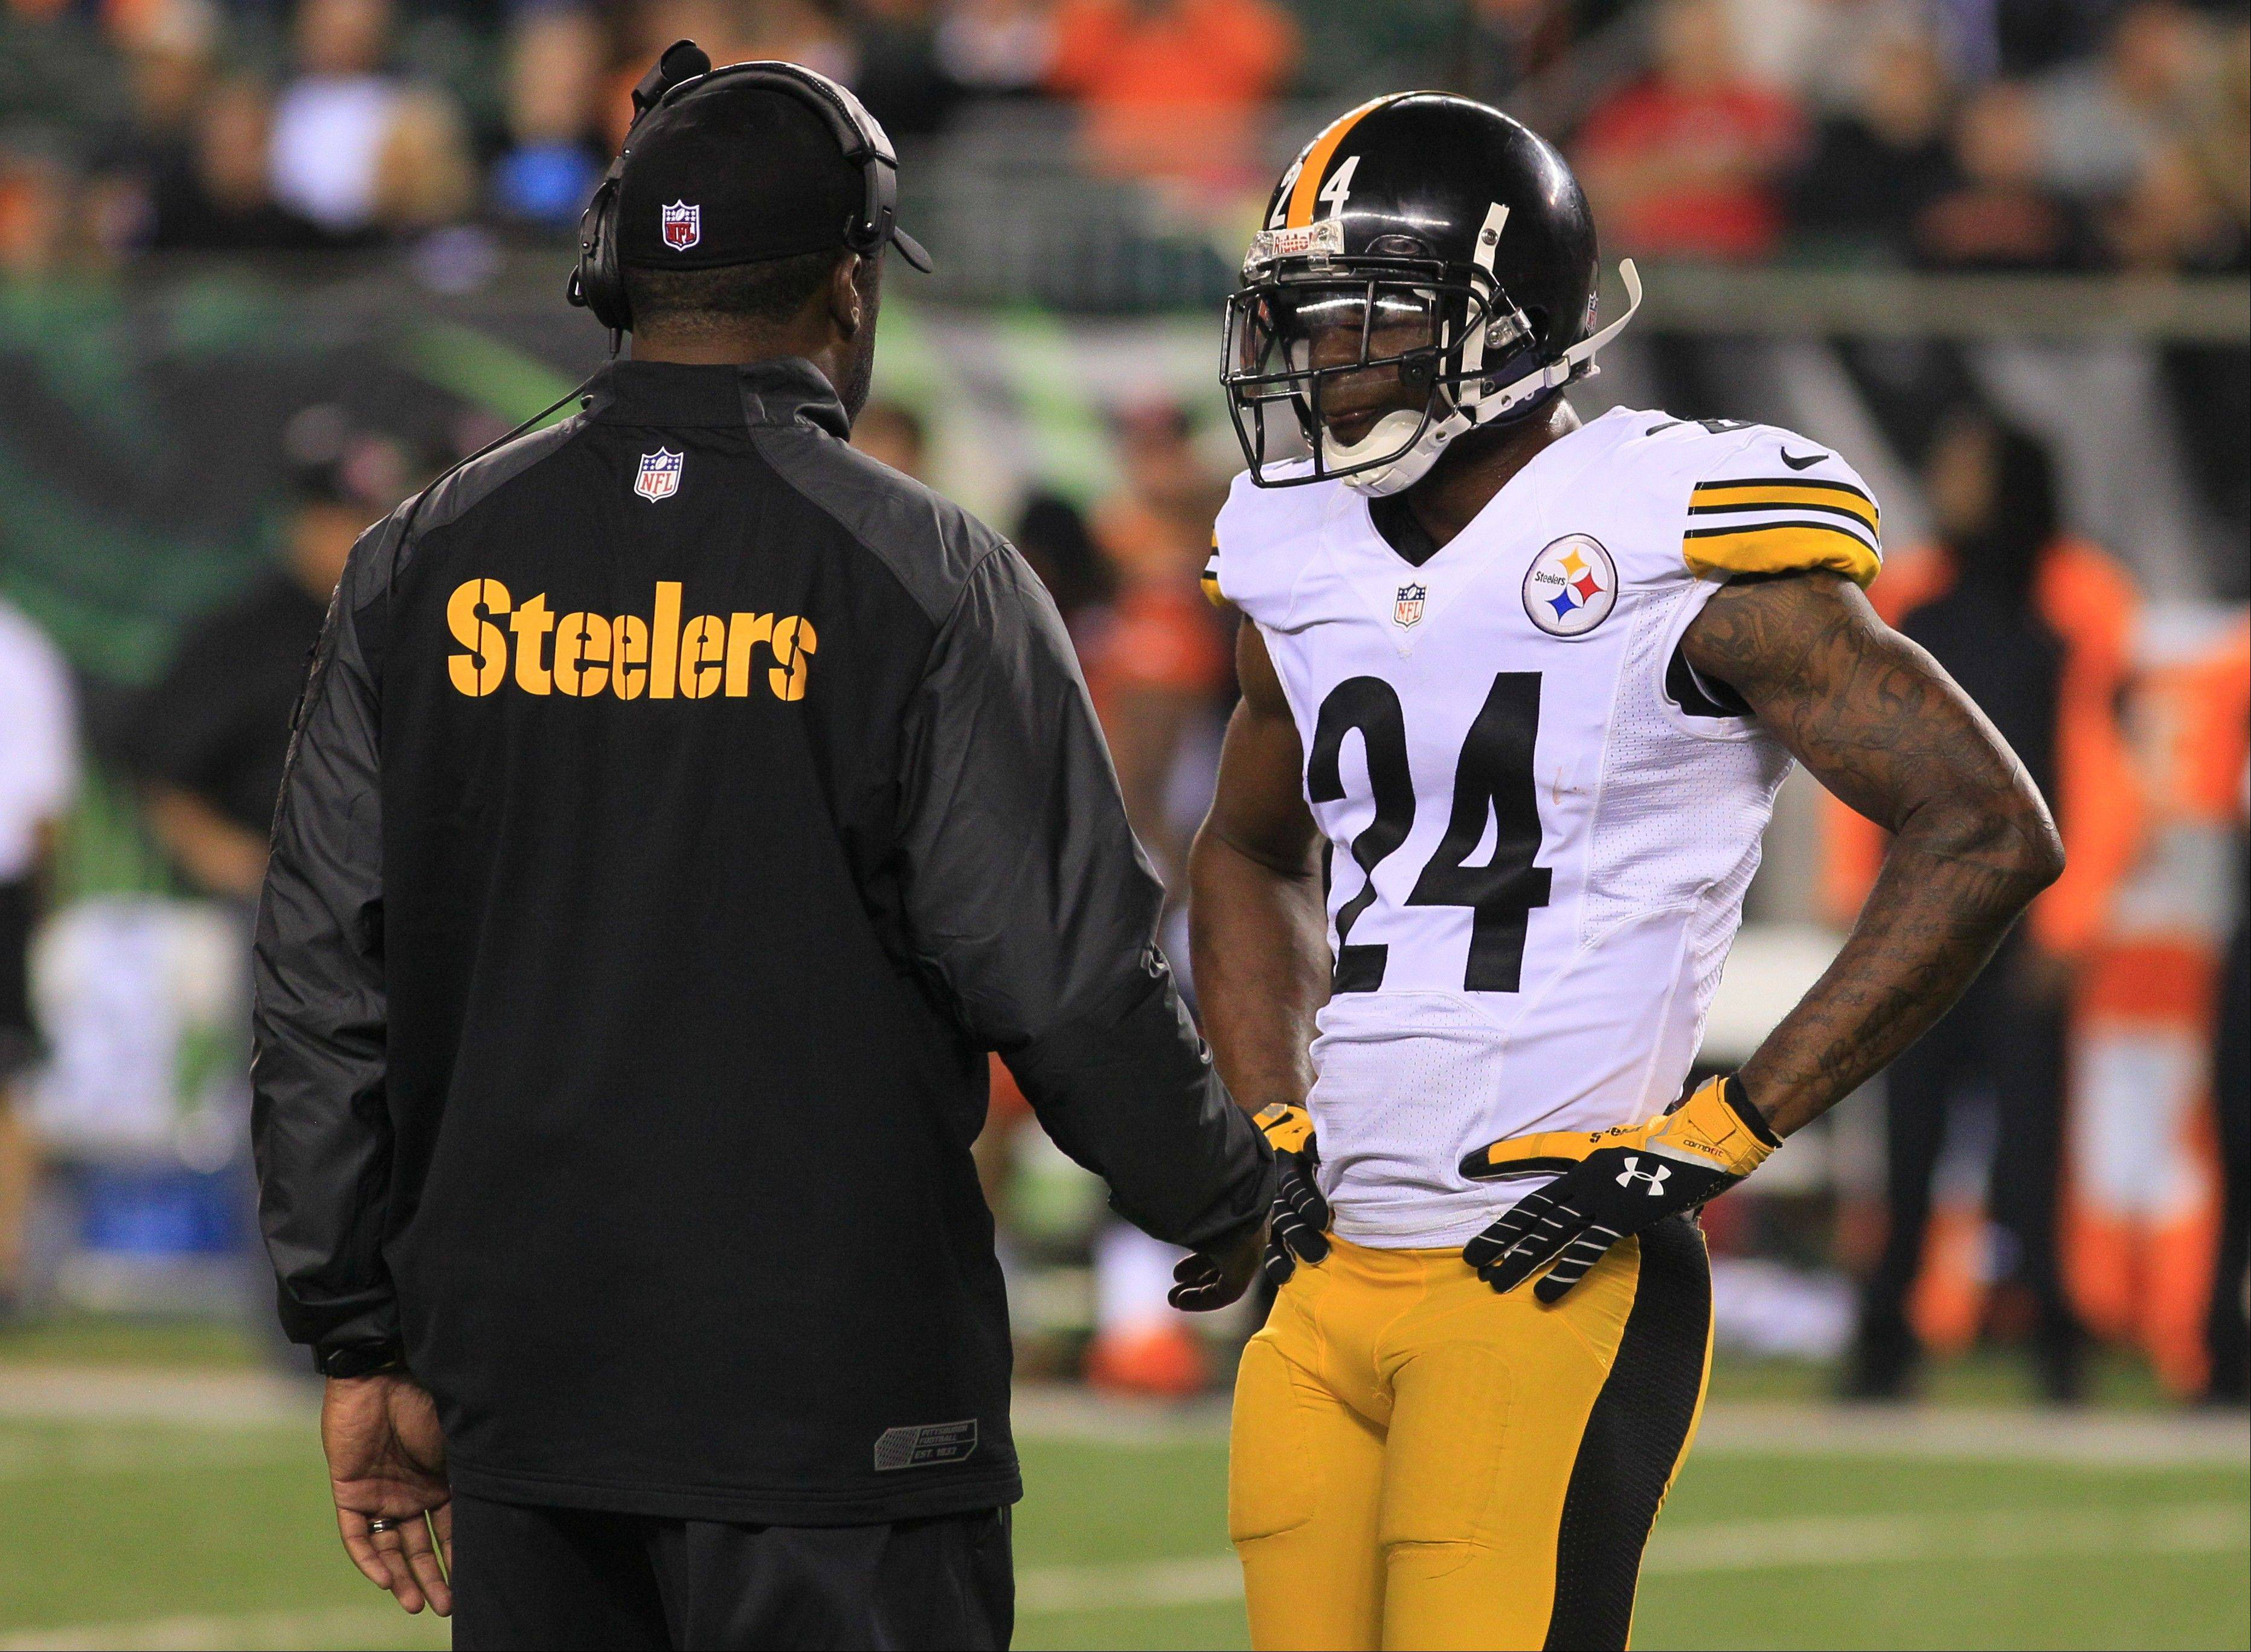 Pittsburgh Steelers head coach Mike Tomlin talks with cornerback Ike Taylor (24) in the second half of an NFL football game against the Cincinnati Bengals, Monday, Sept. 16, 2013, in Cincinnati. (AP Photo/Tom Uhlman)